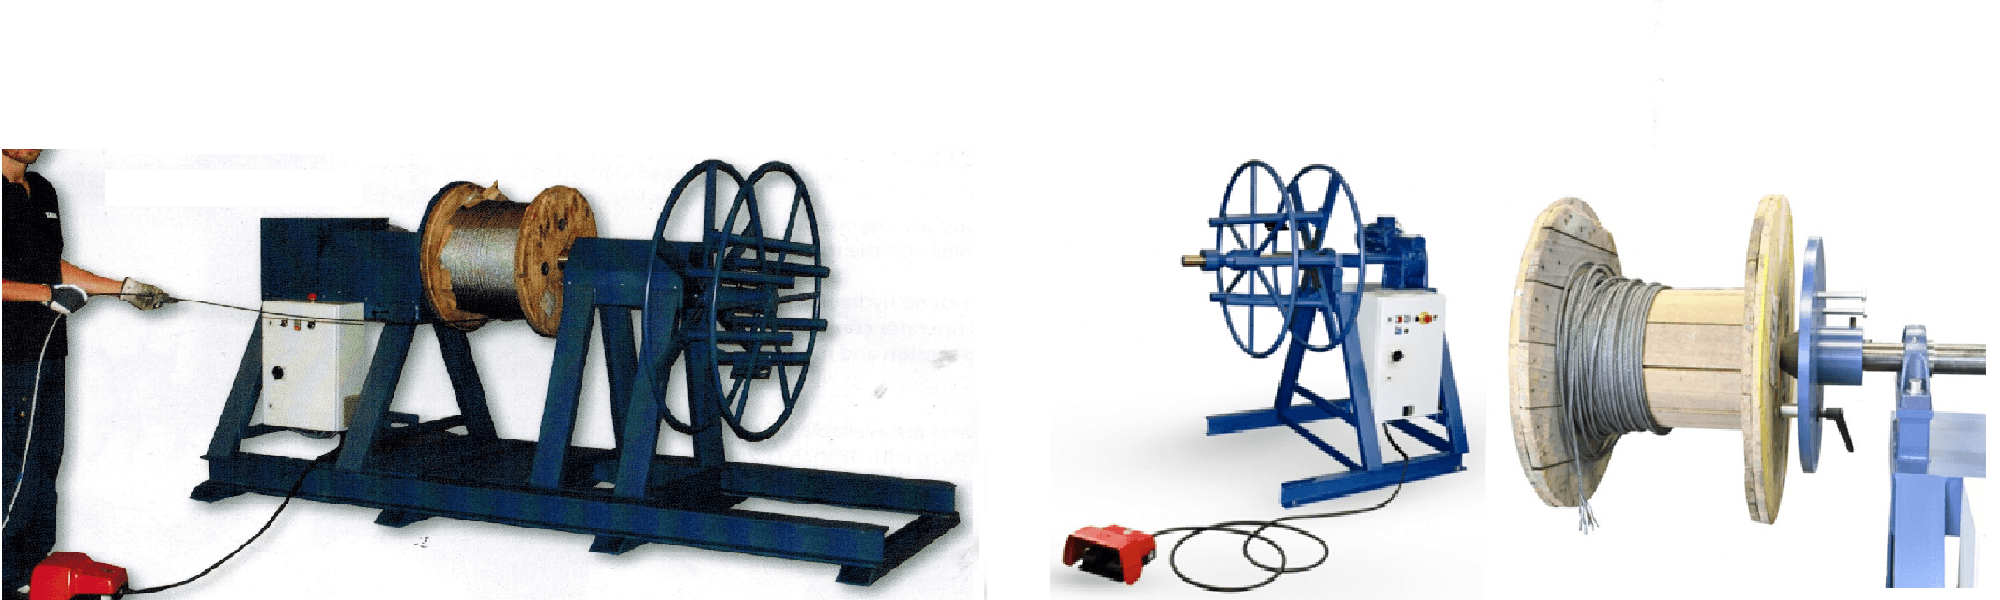 coiling machines and reeling machines